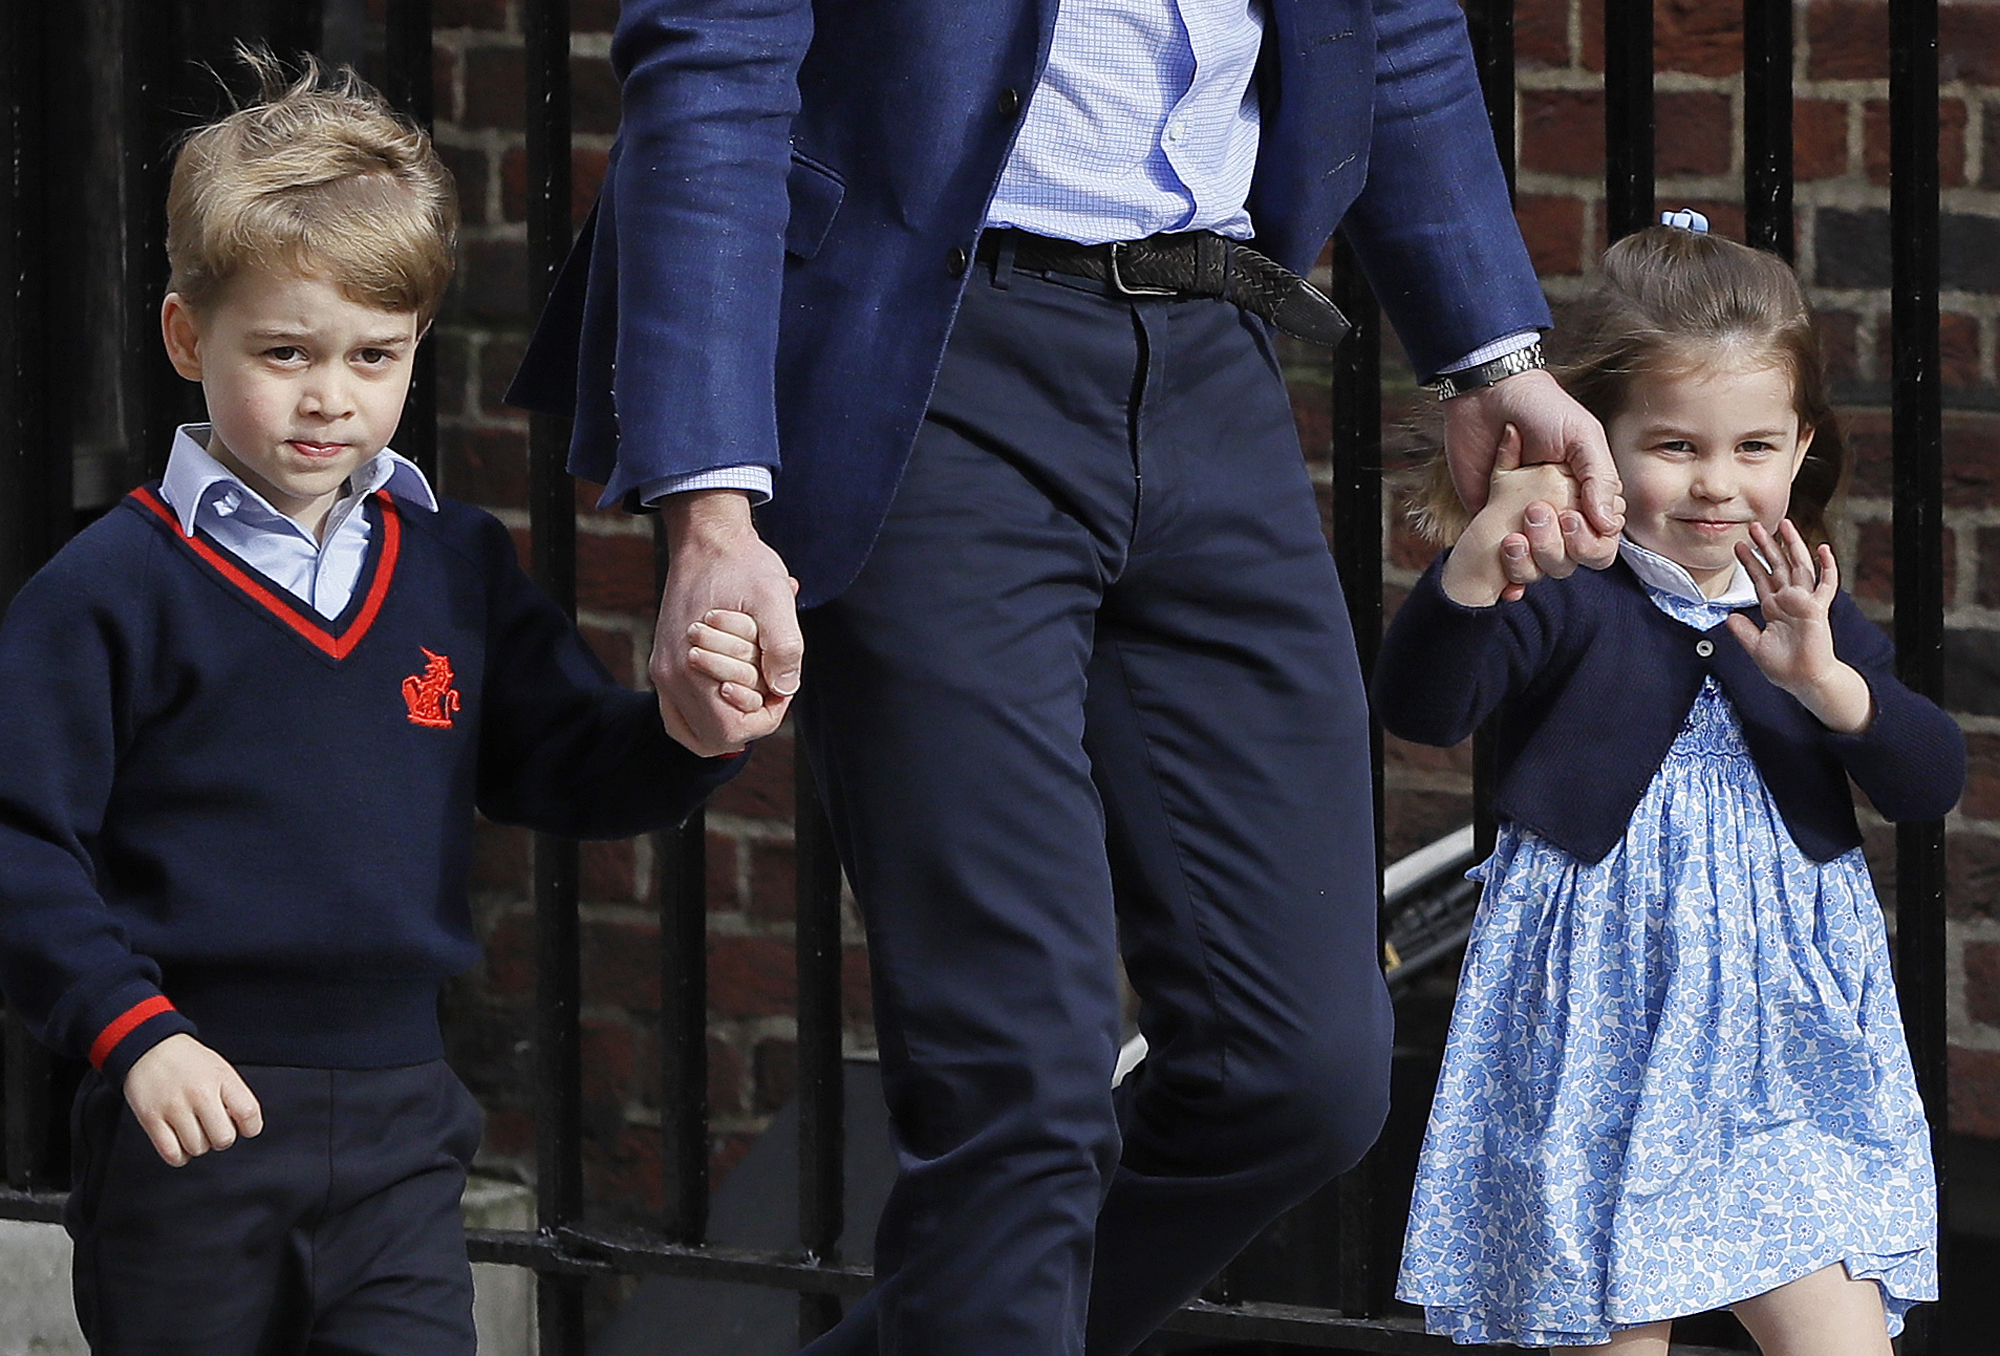 <div class='meta'><div class='origin-logo' data-origin='none'></div><span class='caption-text' data-credit='Kirsty Wigglesworth/AP Photo'>Britain's Prince William arrives with Prince George and Princess Charlotte back to the Lindo wing at St Mary's Hospital in London London, Monday, April 23, 2018.</span></div>